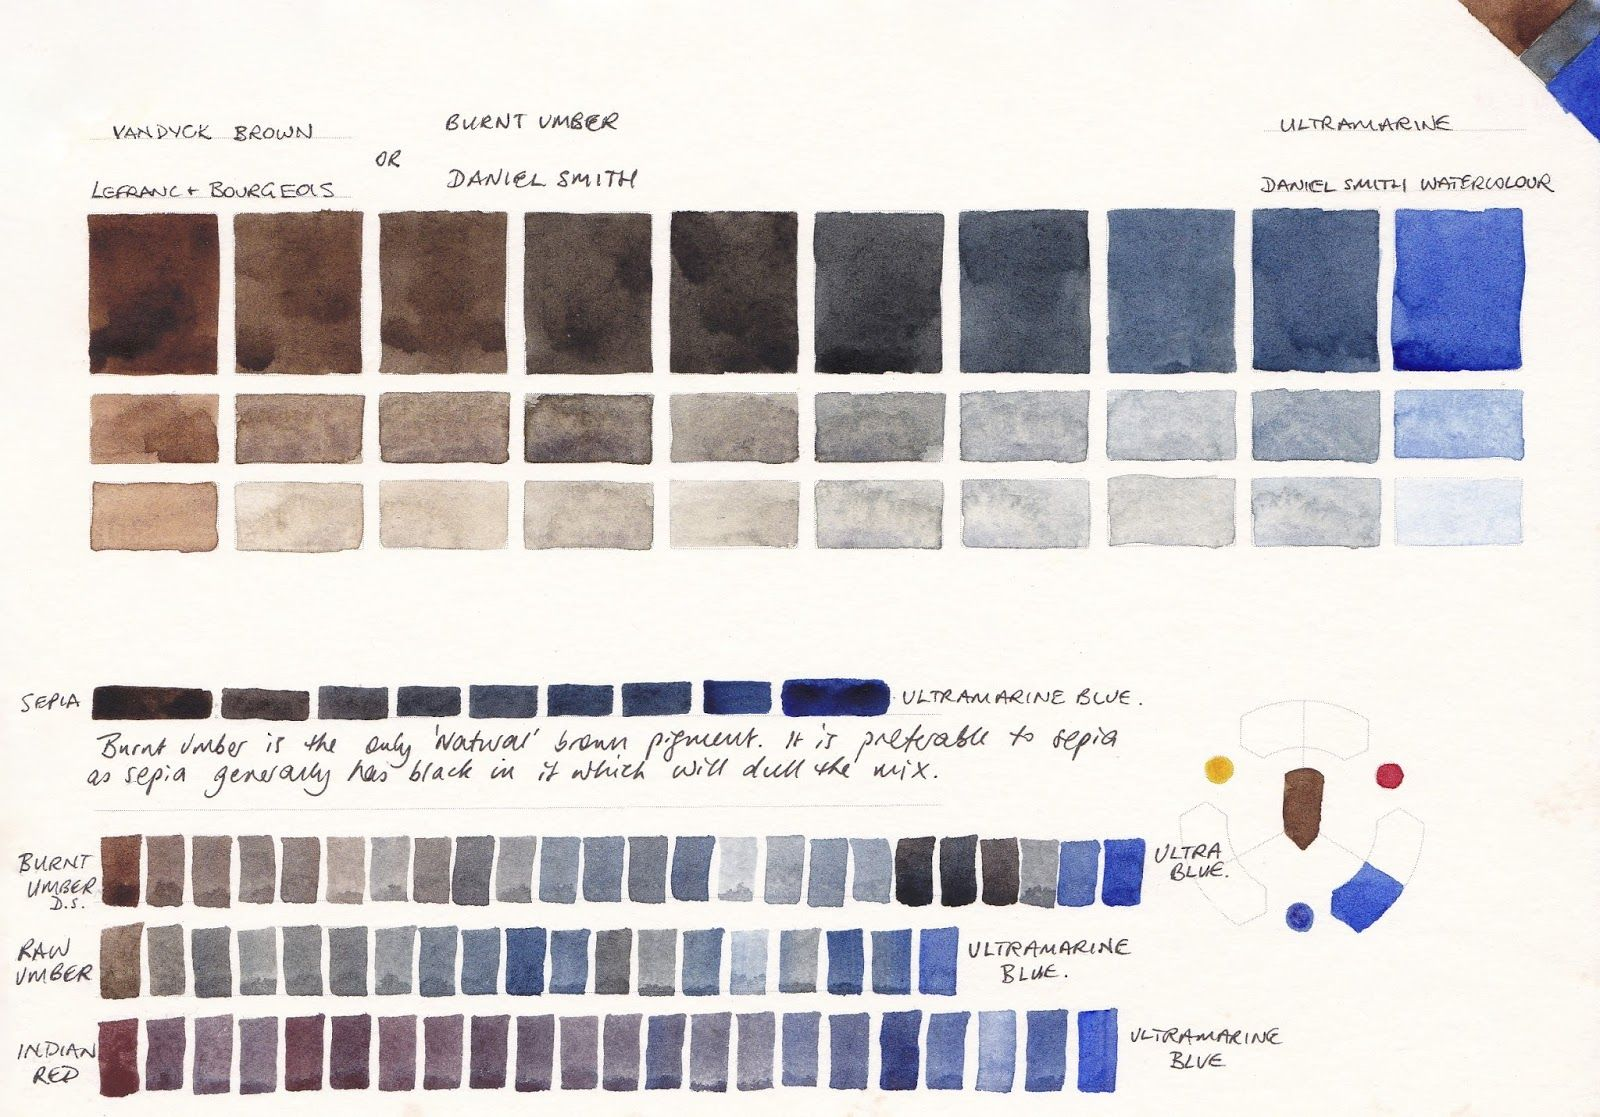 Watercolour Comparisons 1 Ultramarine Blue Pb29 Watercolor